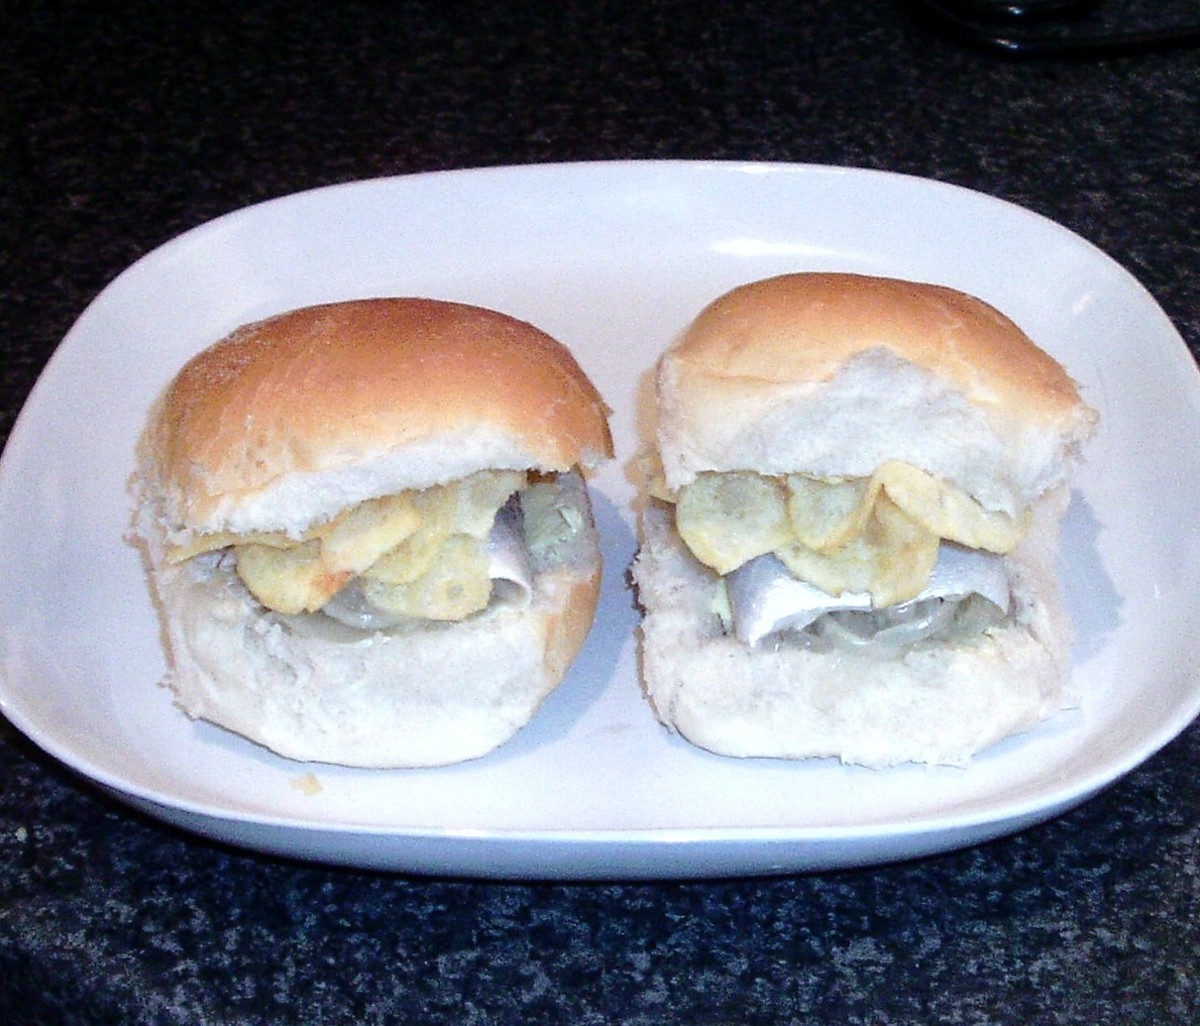 Pickled herring or rollmops with salt and vinegar crisps sandwich